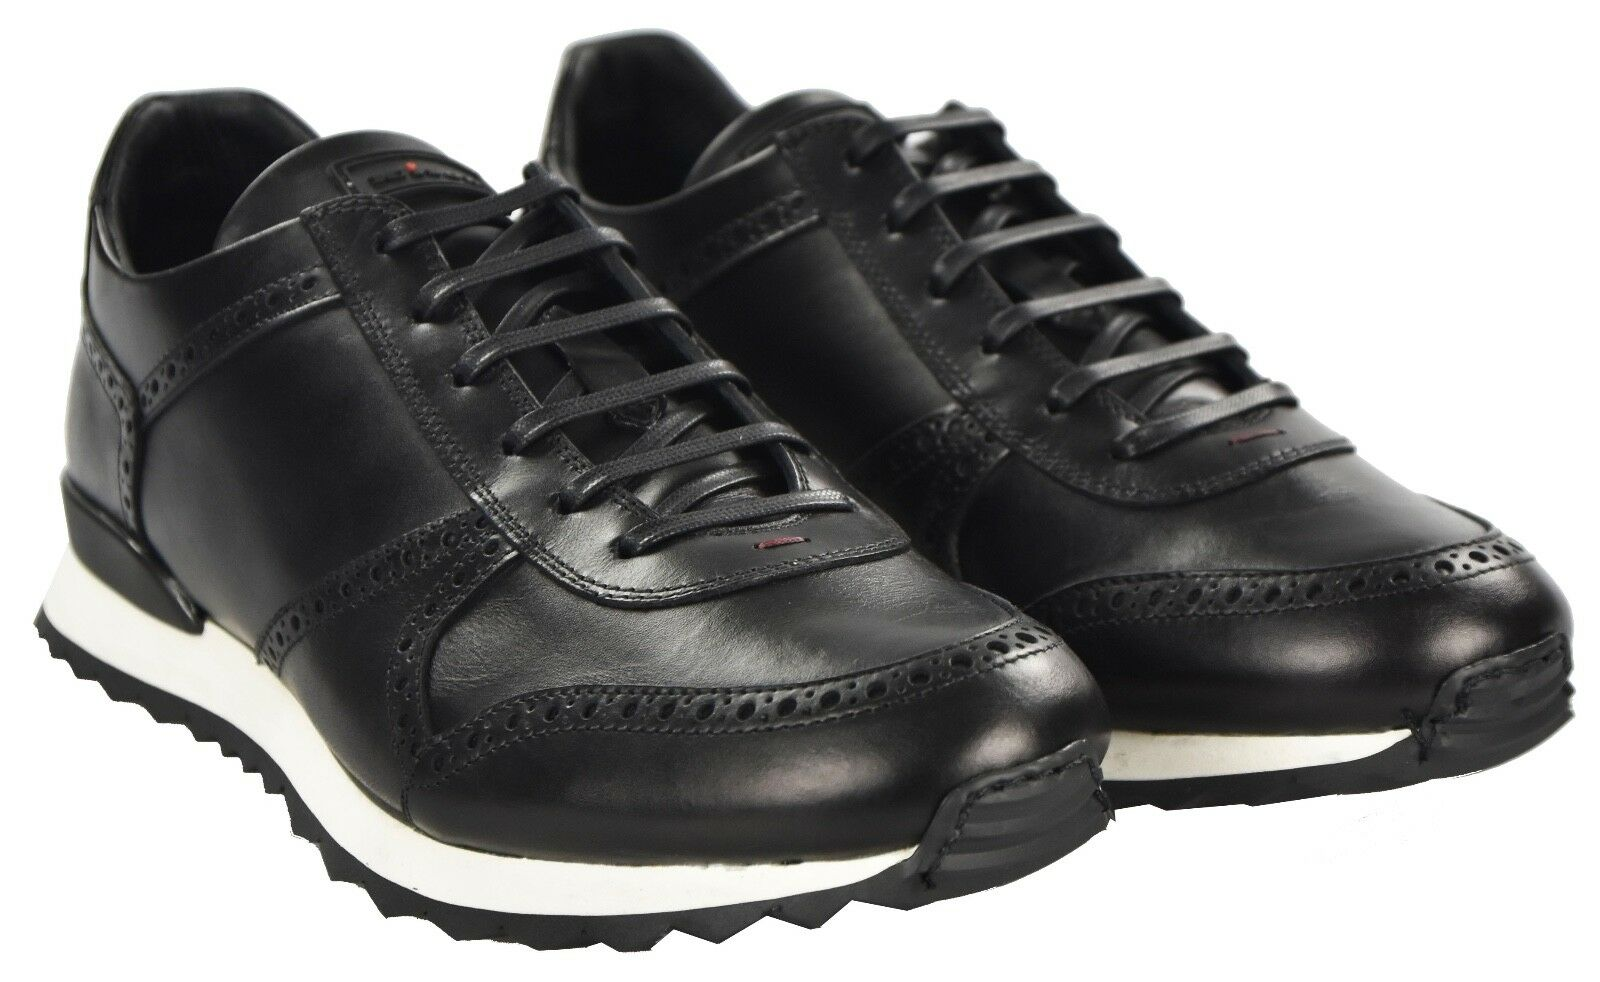 NEW KITON SHOES SNEAKERS 100% LEATHER SIZE 9 US 42 KSCW4